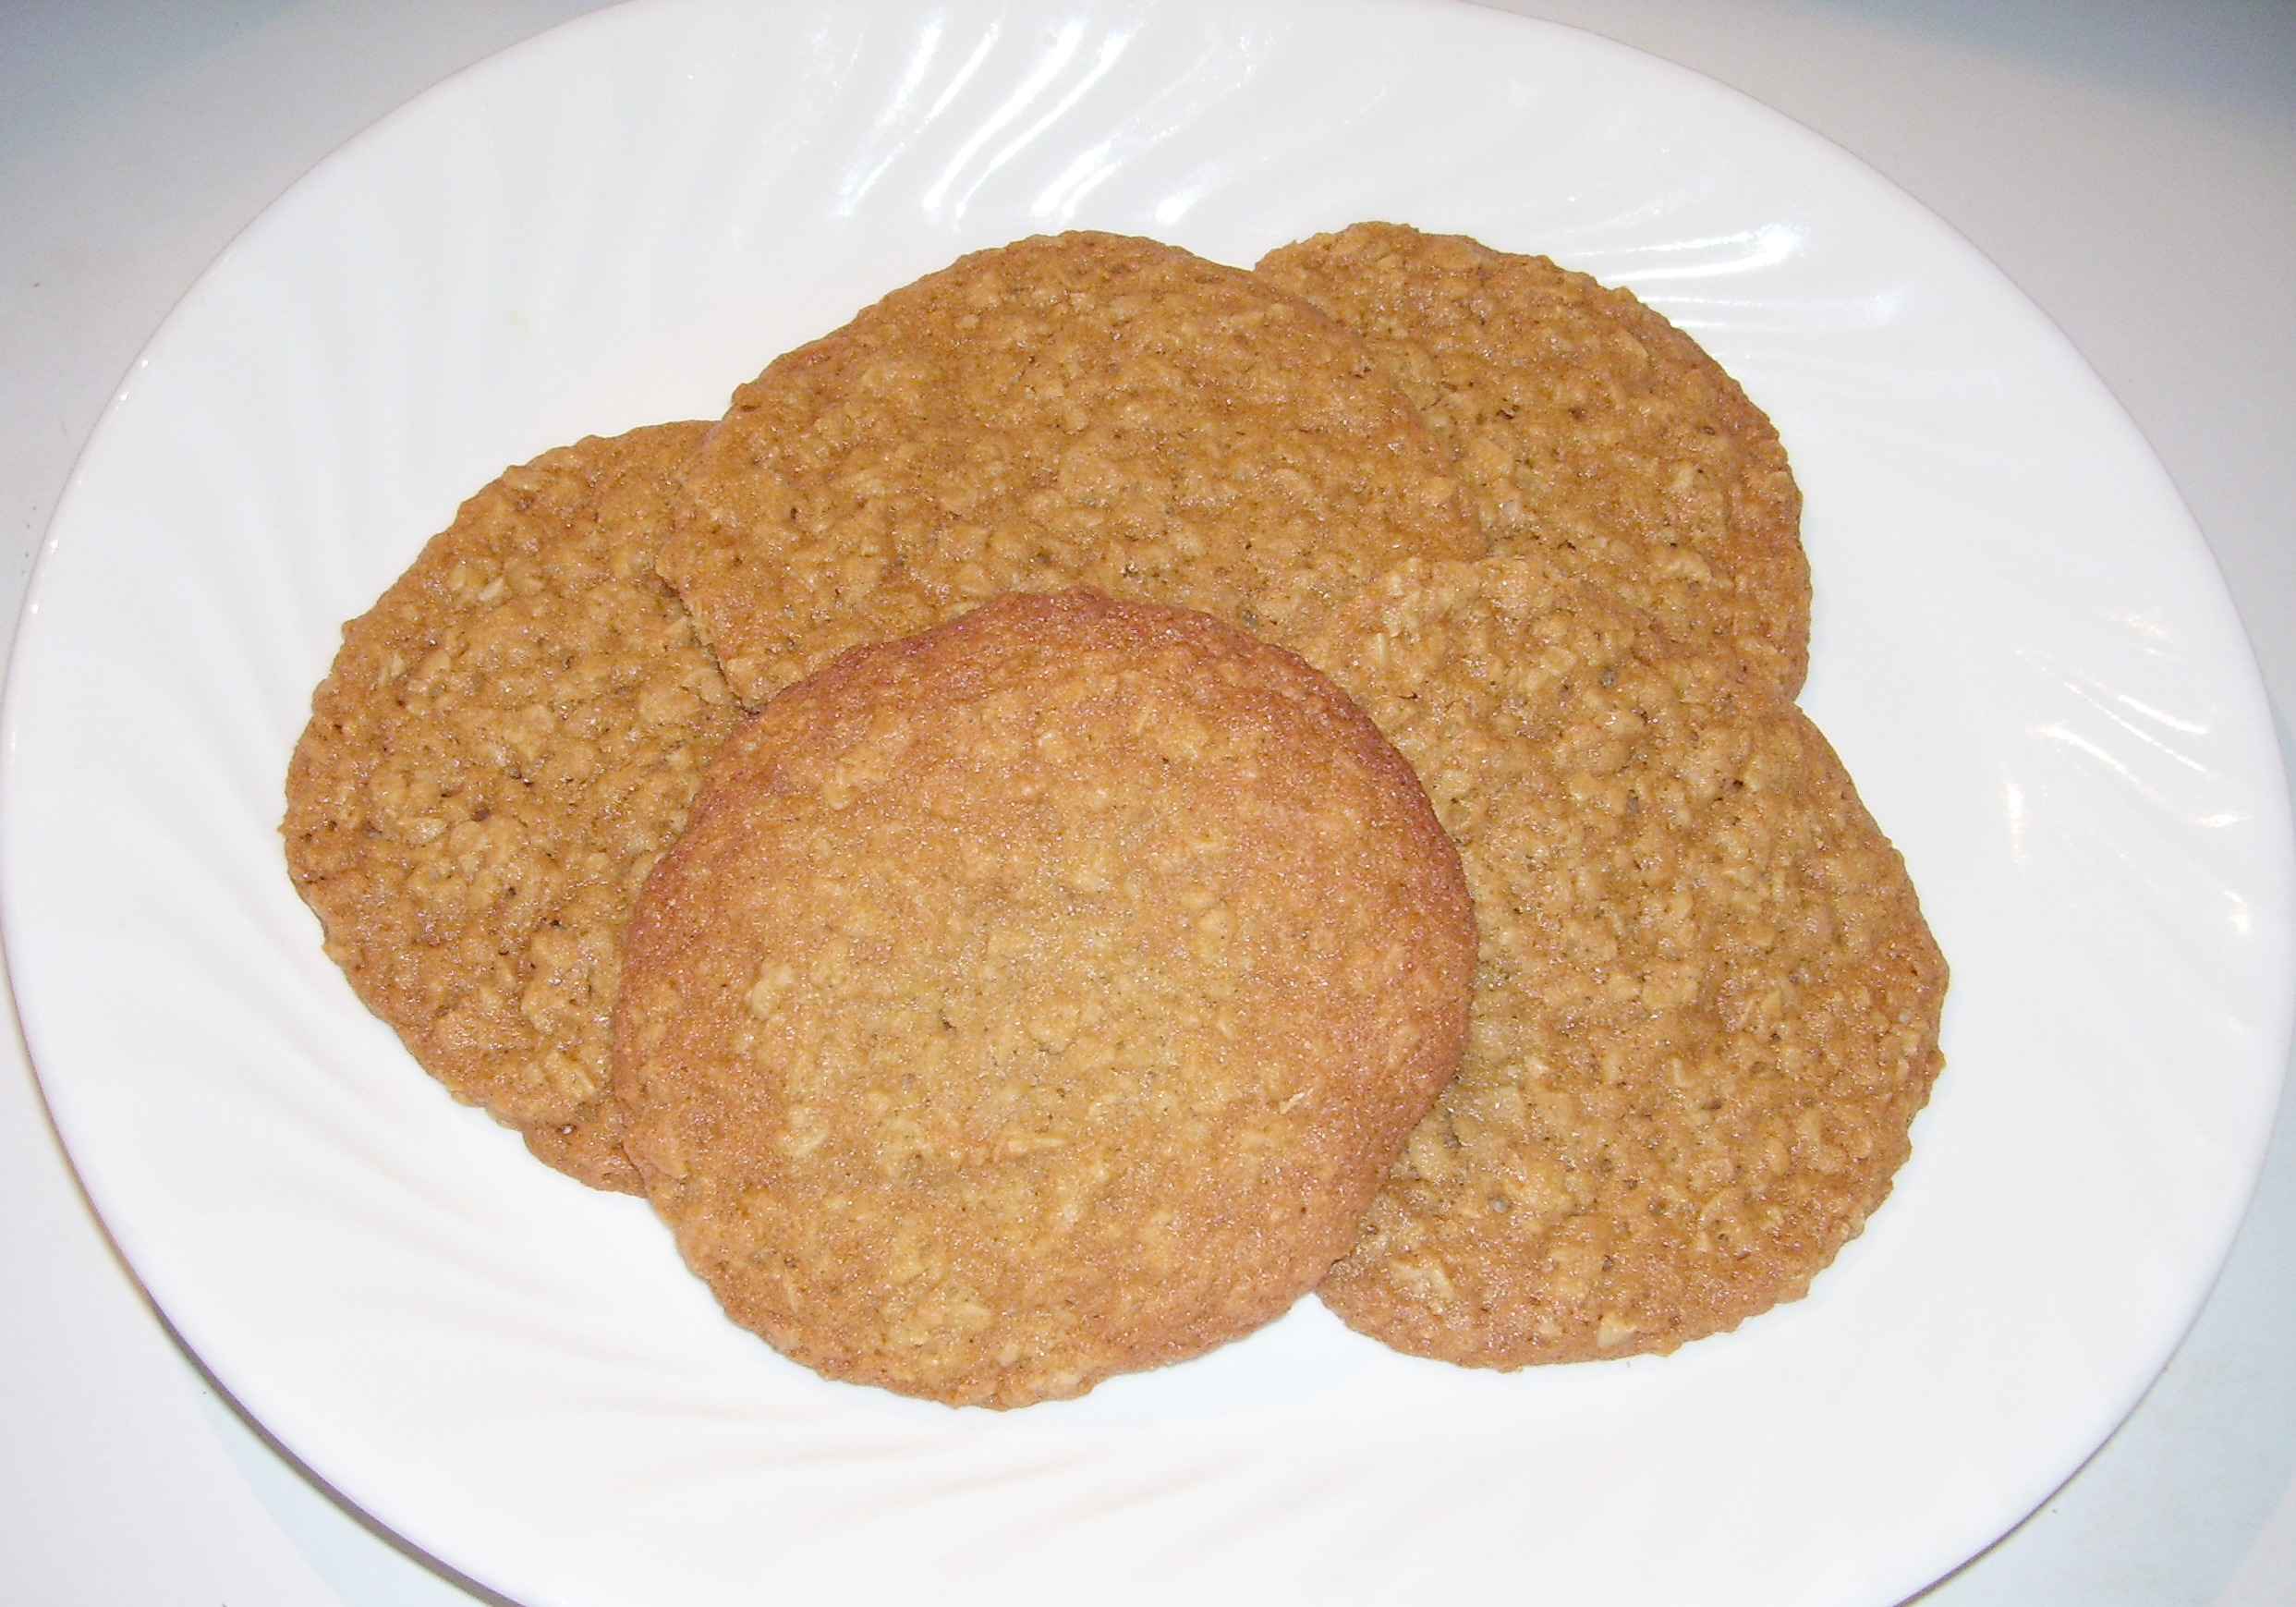 Best Oatmeal Sandwiched Filling with a dreamy, cream filling flavored with vanilla and coconut flavoring. Scrumptious!